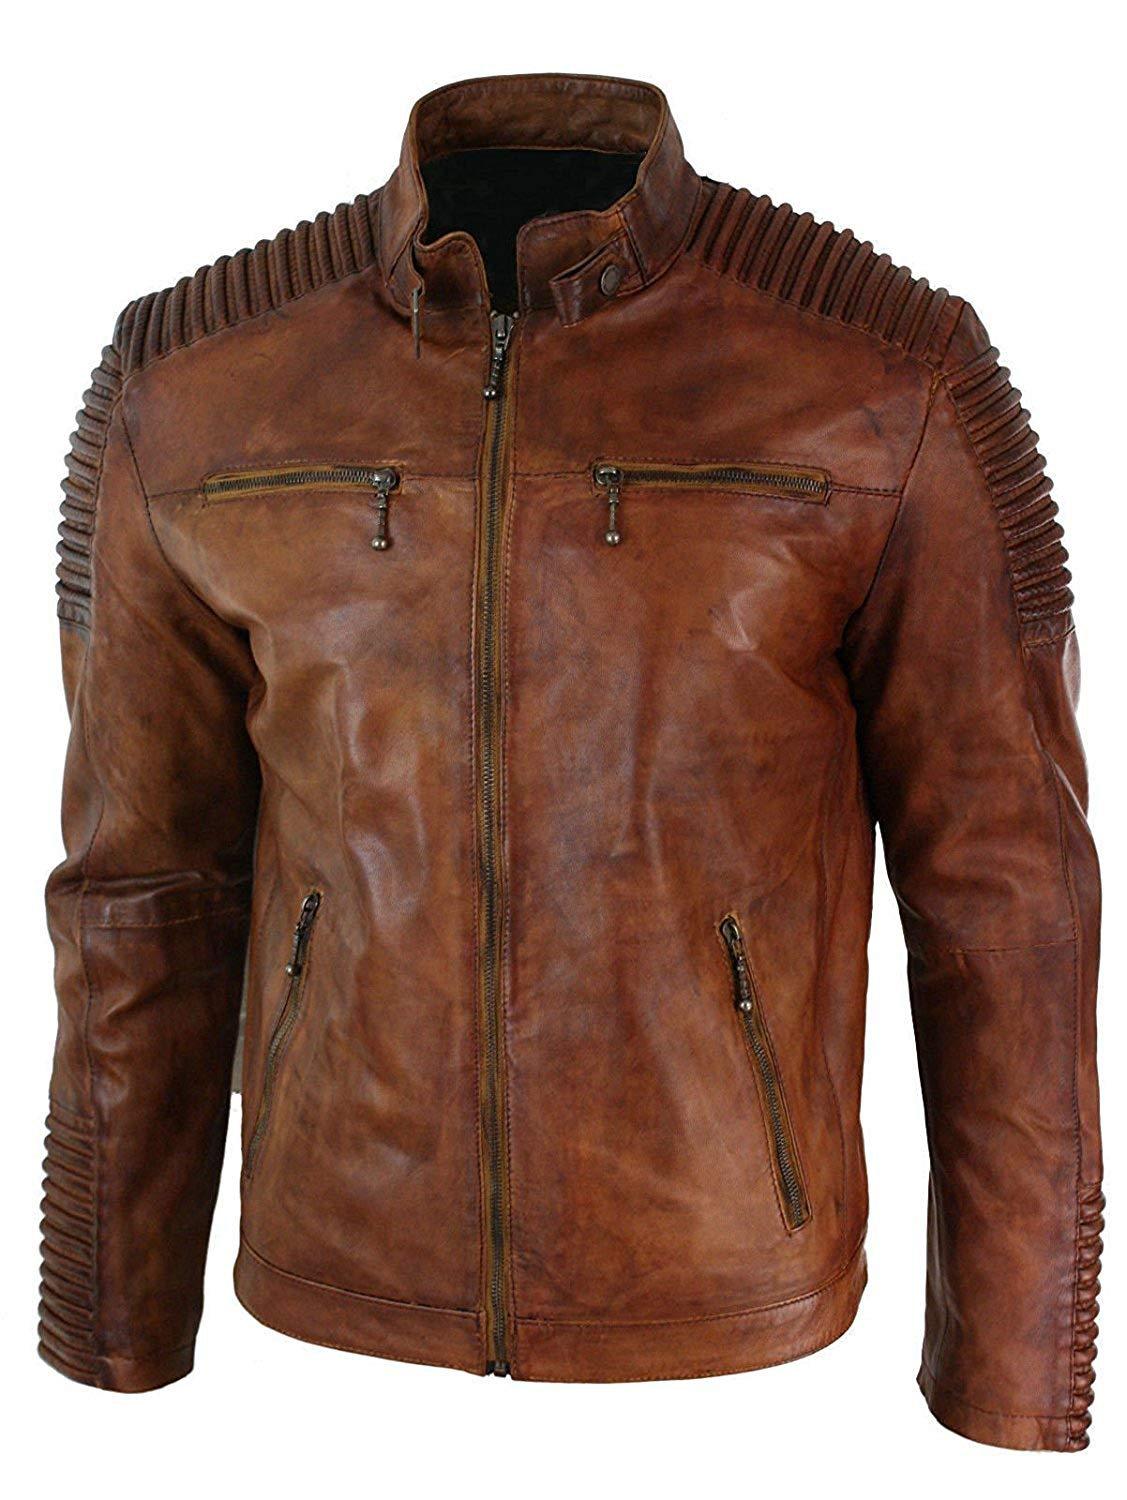 9272d4ba2 Cheap Speed Racer Leather Jacket, find Speed Racer Leather Jacket ...